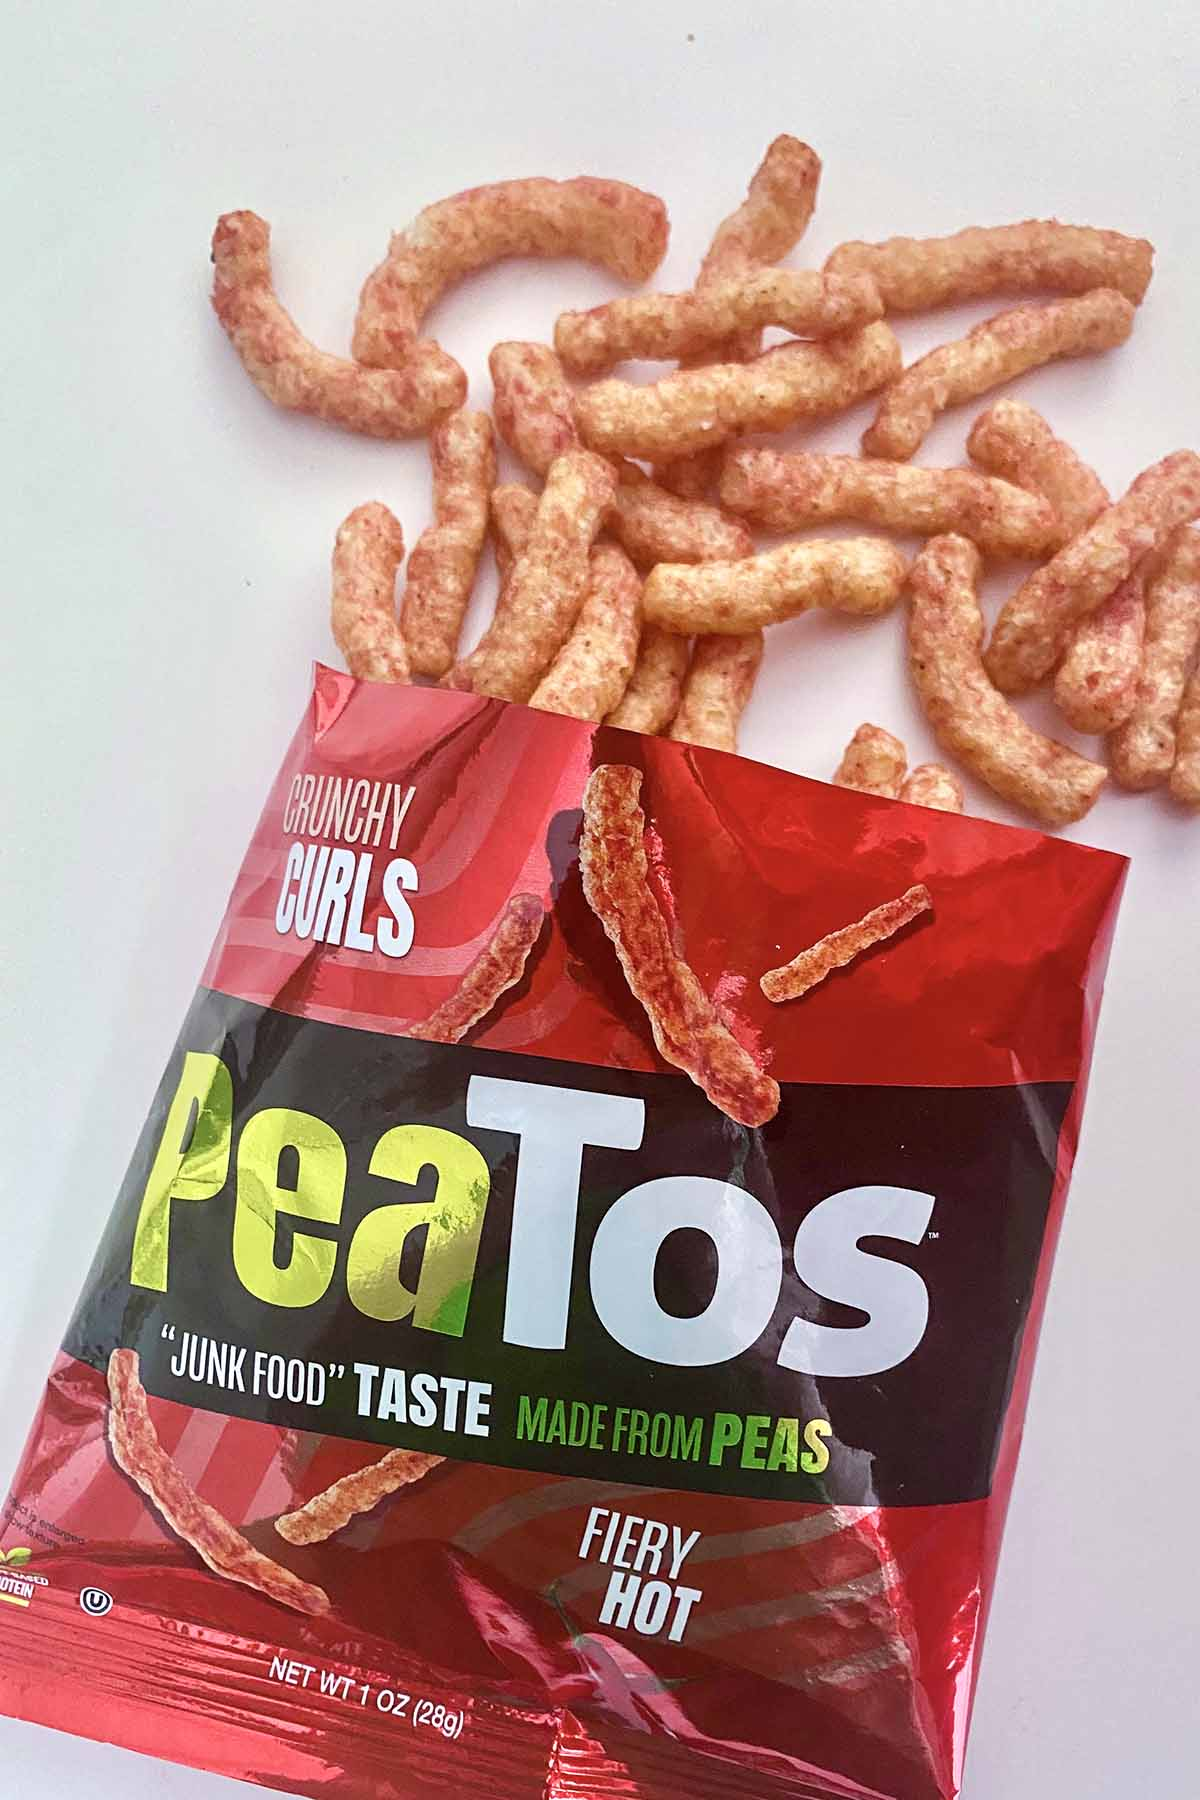 an open bag of Fiery Hot Peatos with pieces spilling out onto a white table